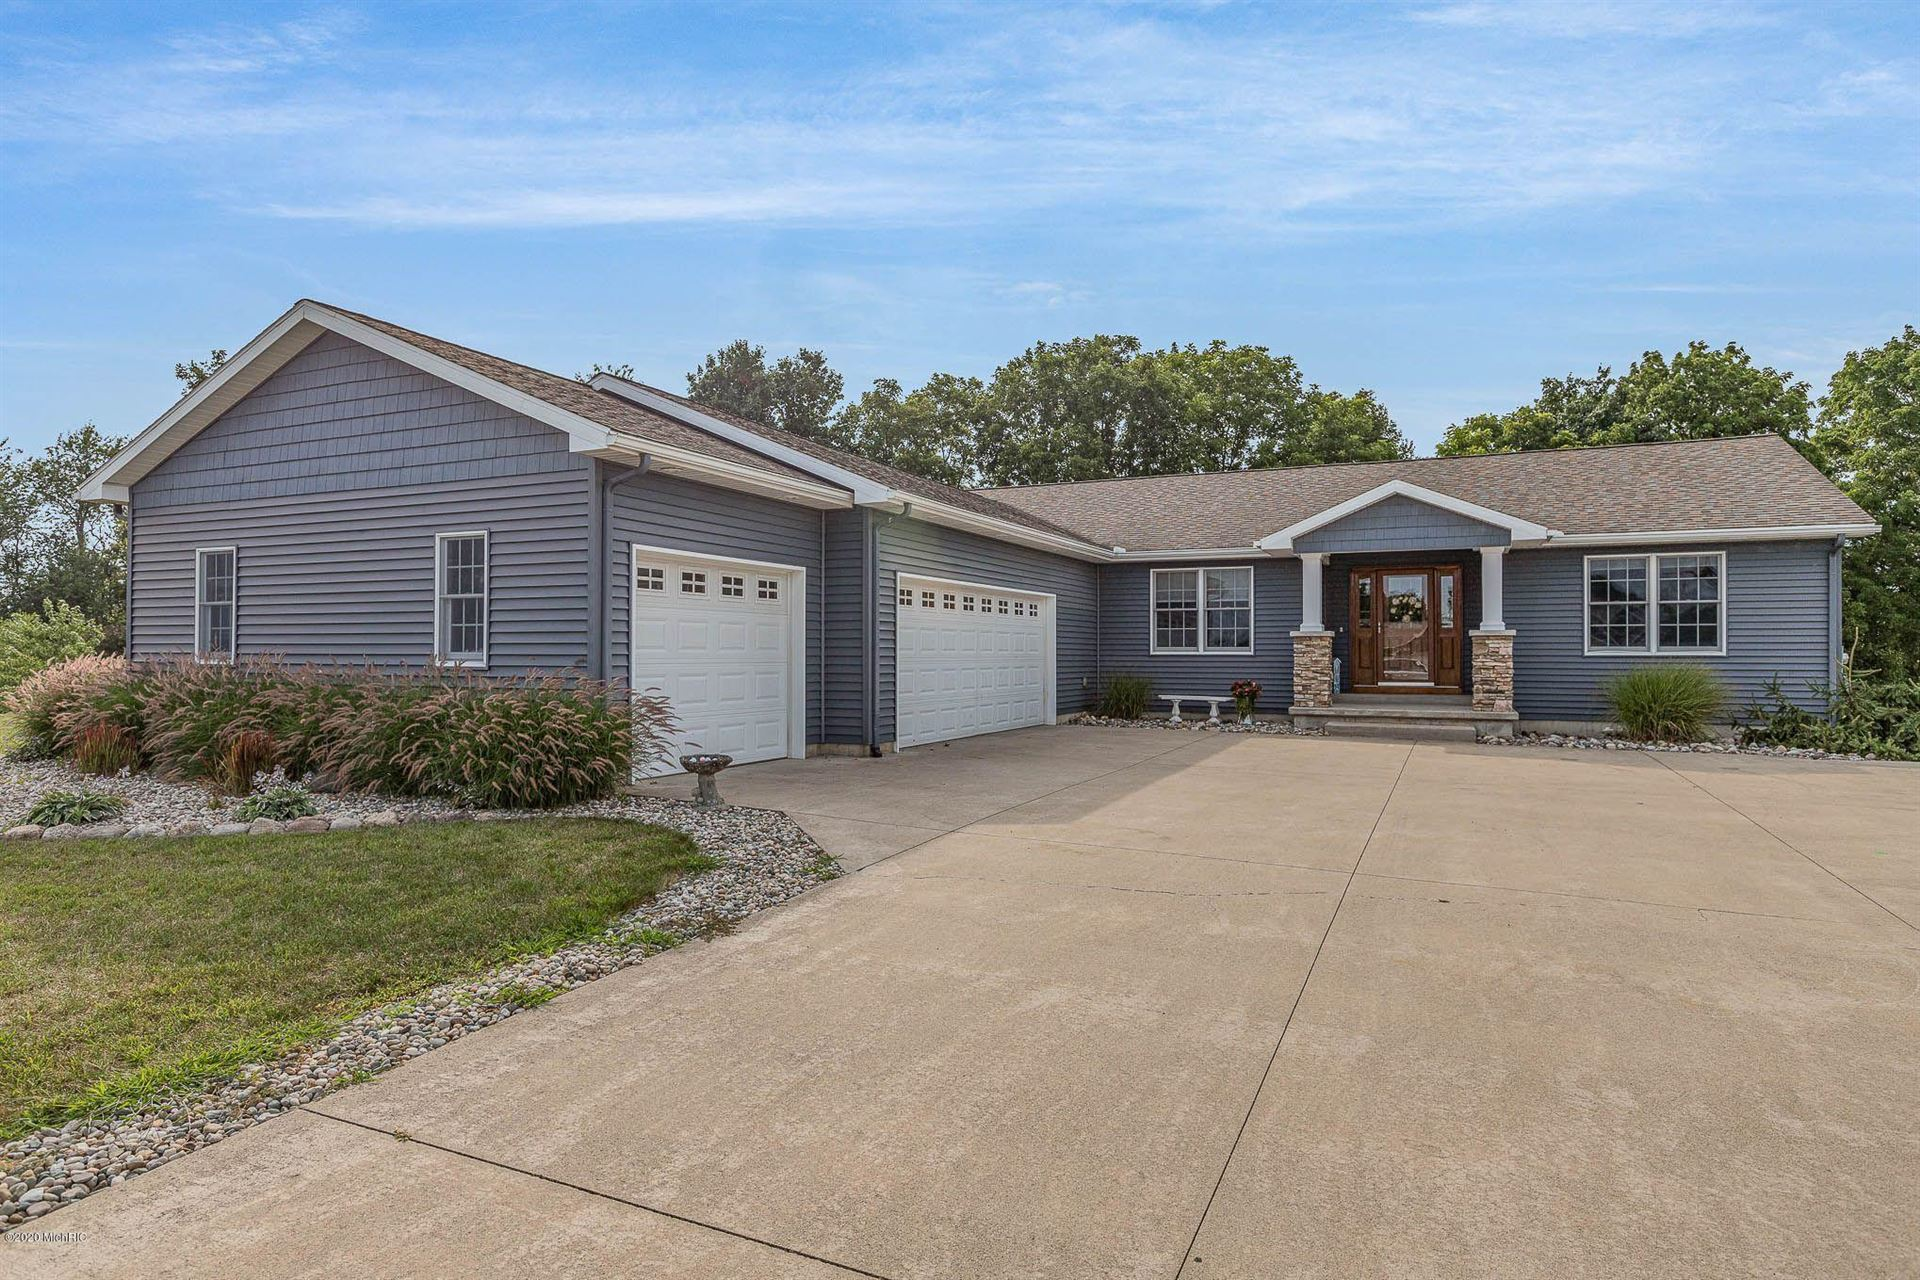 45 Browning Drive, Shelbyville, MI 49344 - MLS#: 20032751